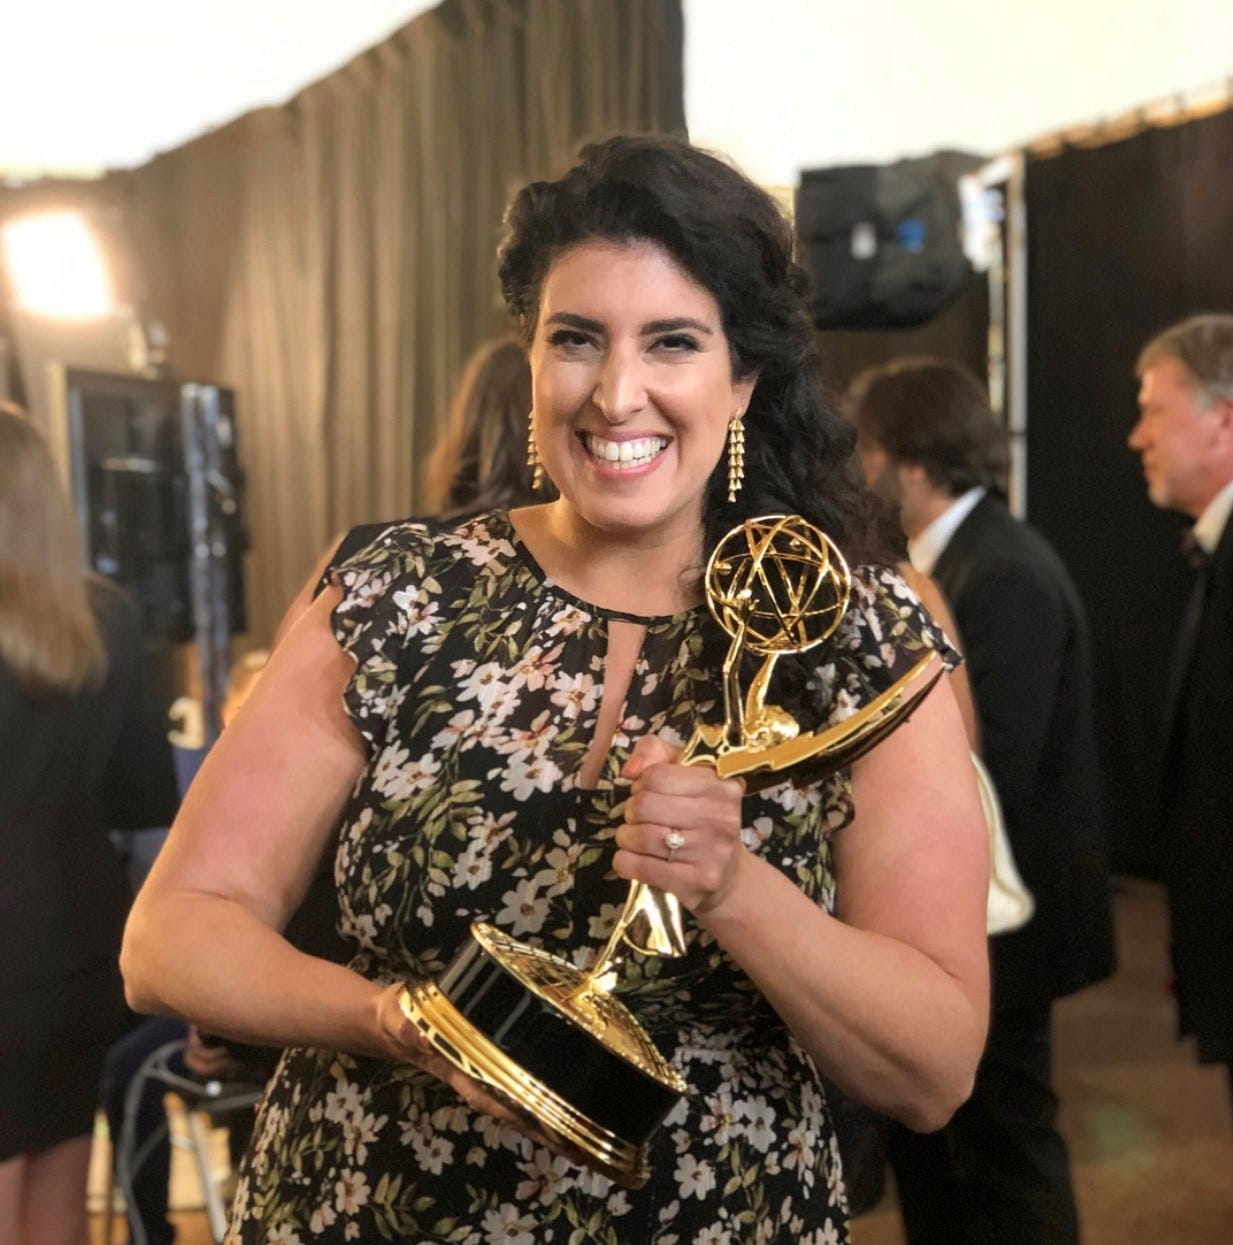 Ridgewood resident Jeanette Donnarumma wins Emmy for her work on 'The Rachael Ray Show'